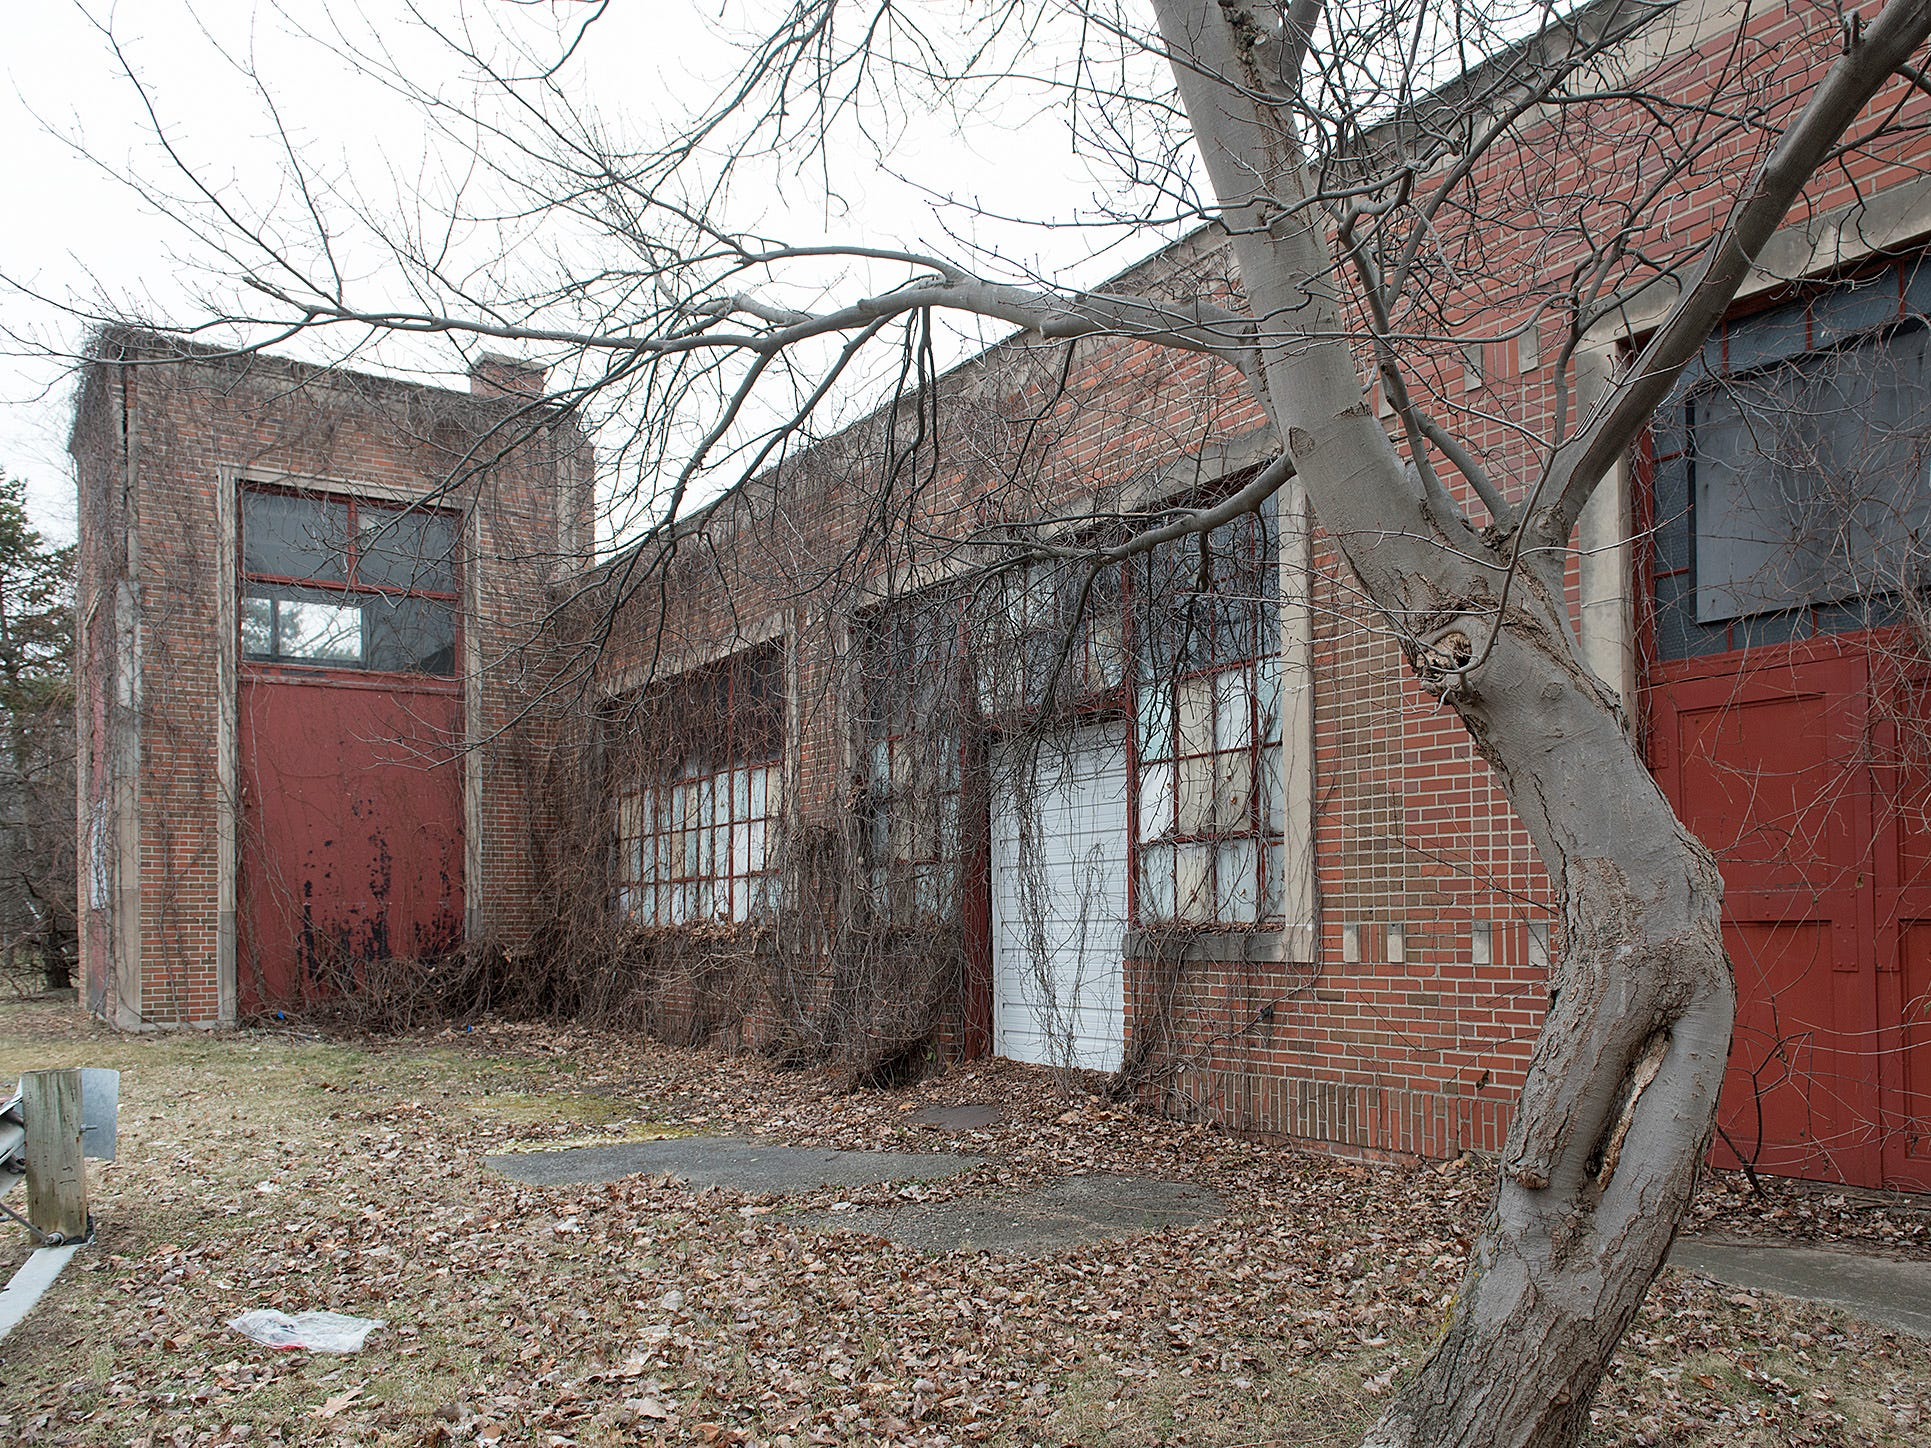 Phoenix Mill, located at Northville Road and Five Mile Road, is proposed for rezoning.